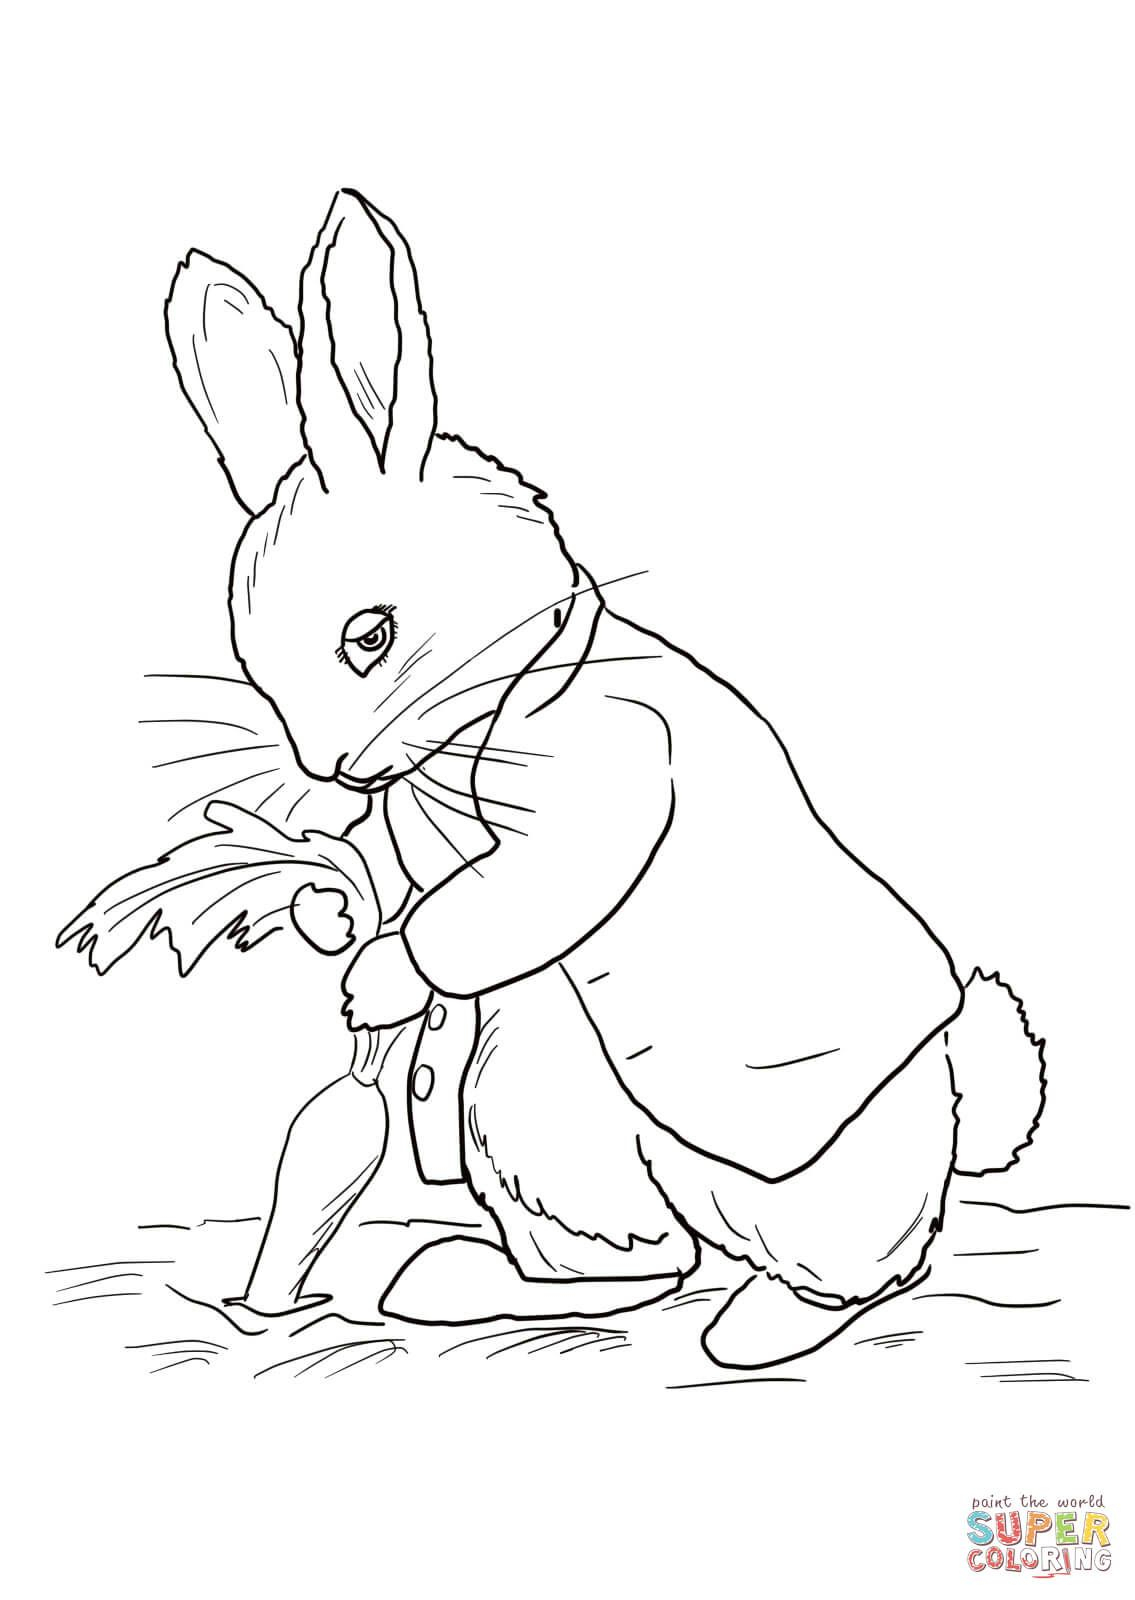 Peter Rabbit Coloring Pages - Coloringtop | Embroidery/ Animals - Free Printable Peter Rabbit Coloring Pages